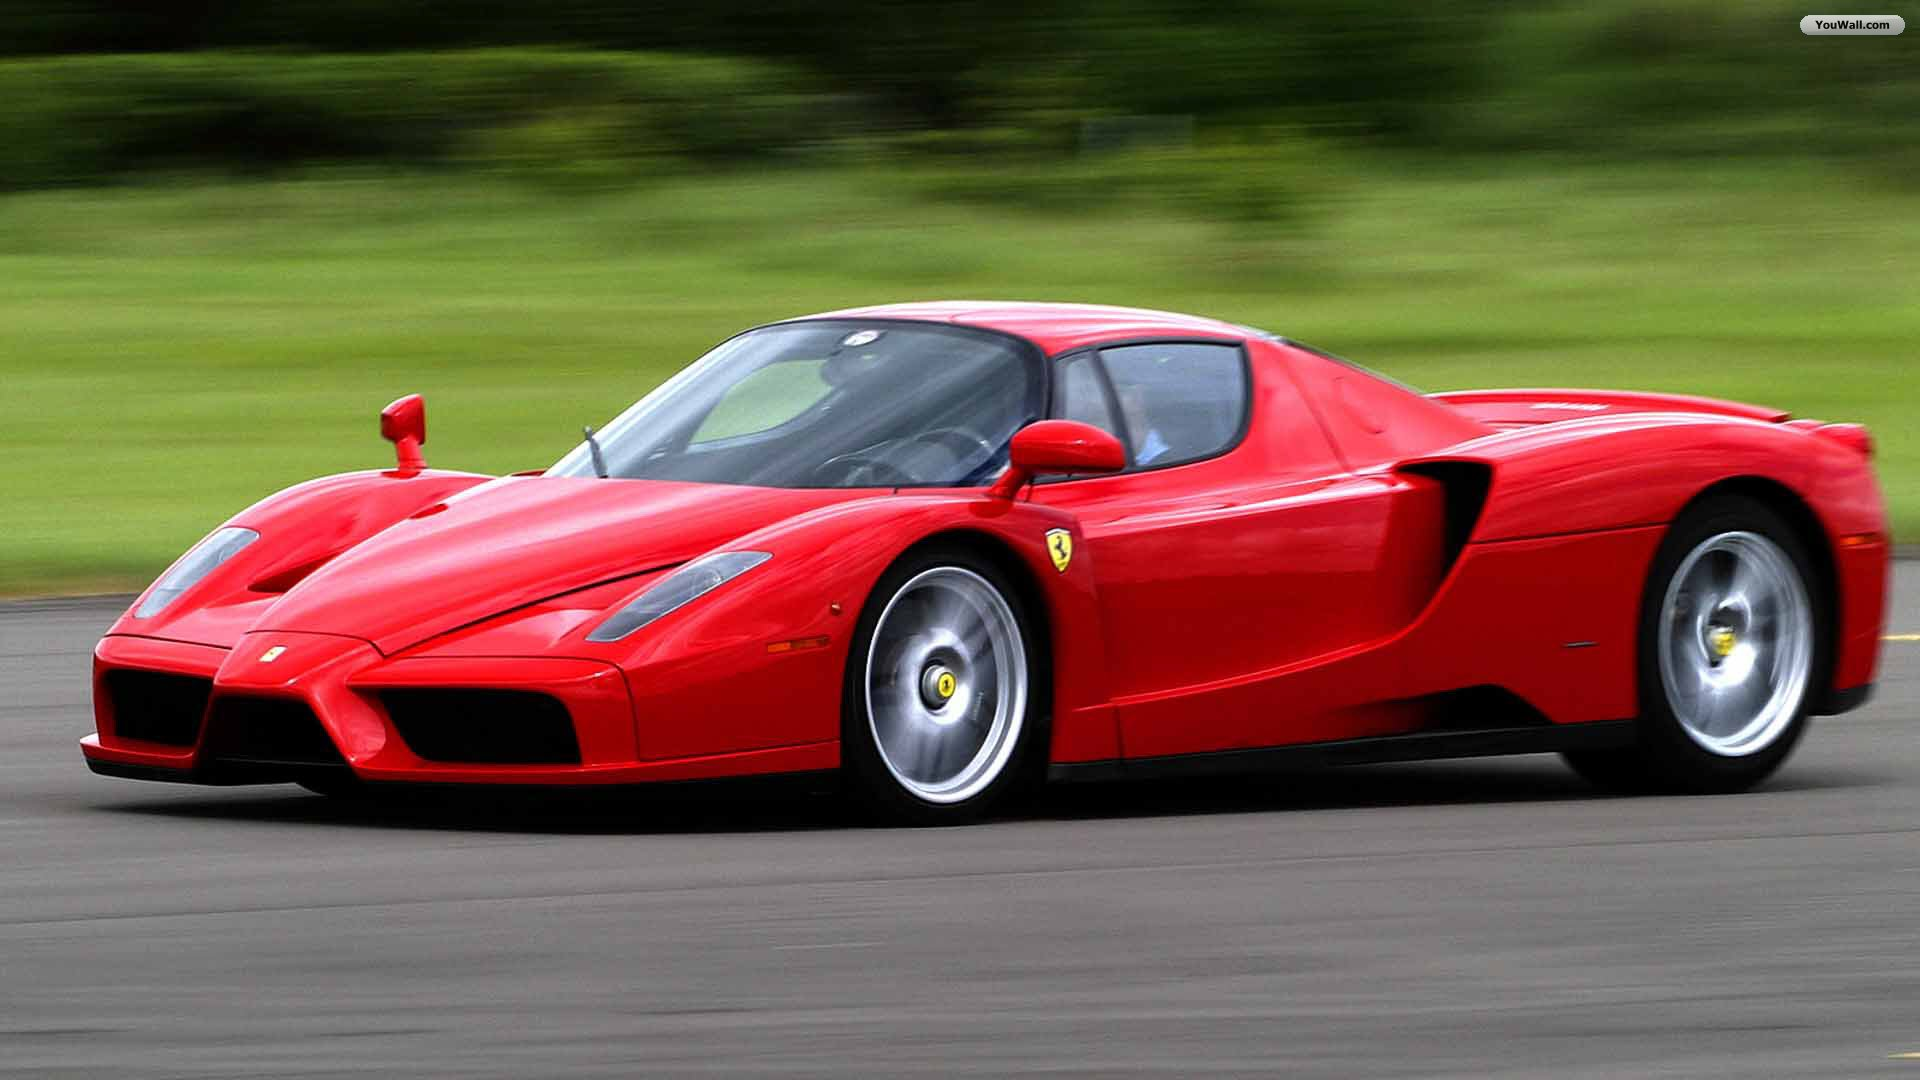 Ferrari Enzo was designed by Ken Okuyama. It was initially announced in Paris Motor Show at 2002. The company has sold this car very intelligently.